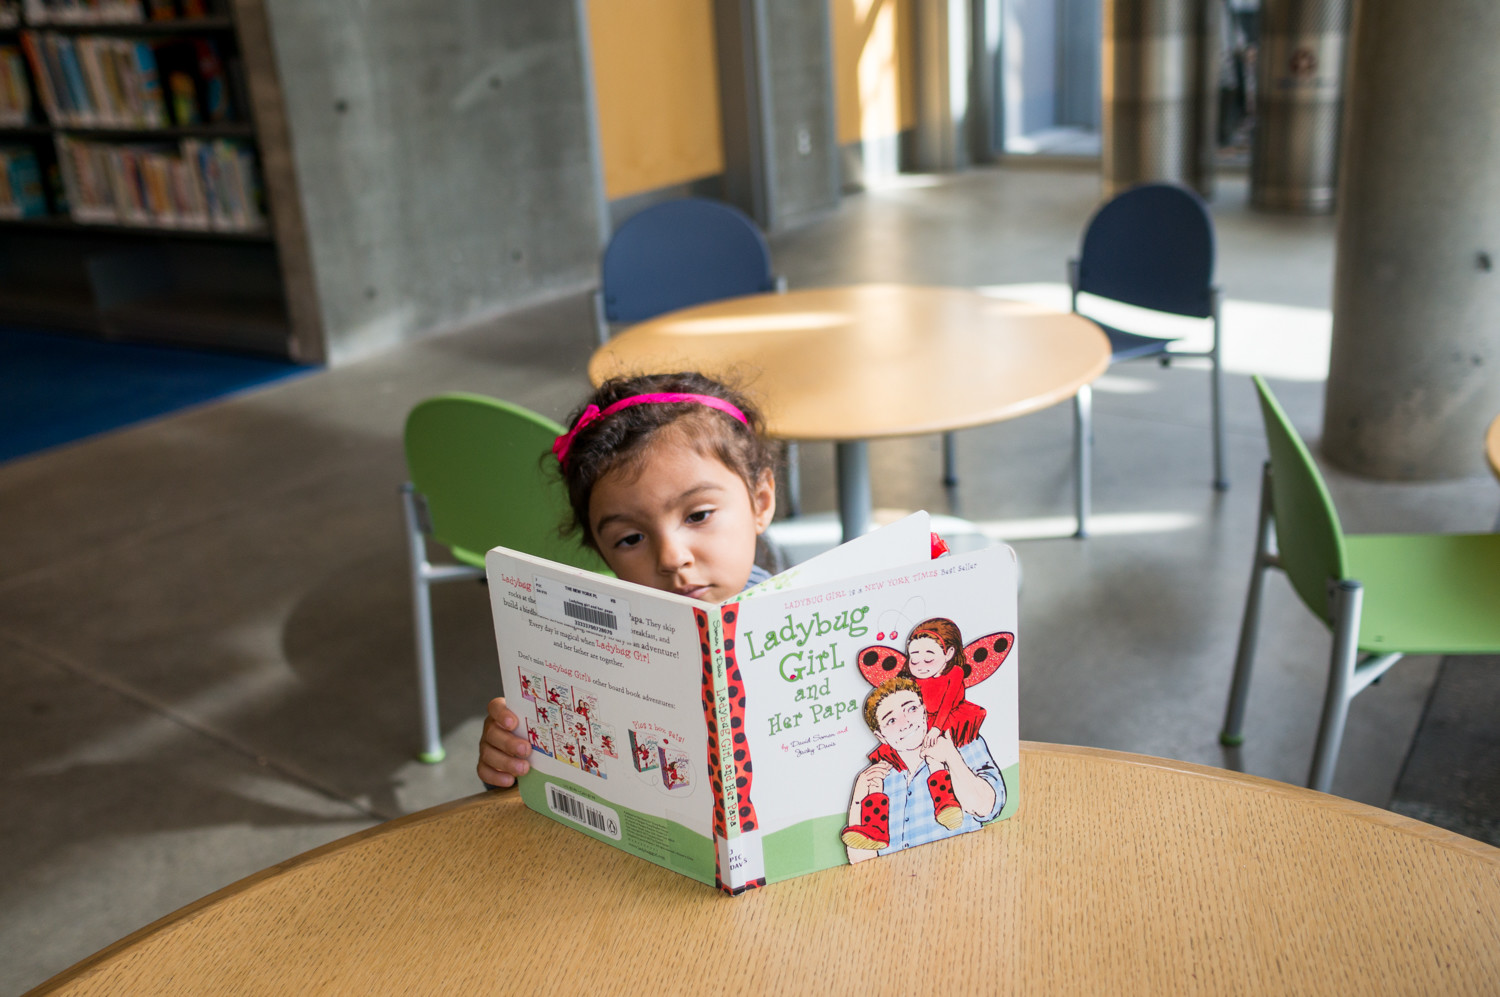 The one-time fine forgiveness at city libraries has allowed young cardholders like Camila Figueroa, 2, to check out materials like the current book she's reading 'Ladybug Girl and Her Papa.' Her mother, Janneth Mejia-Figueroa, brings her Camila, along with her sister and brother Nataly and Ethan to the library.